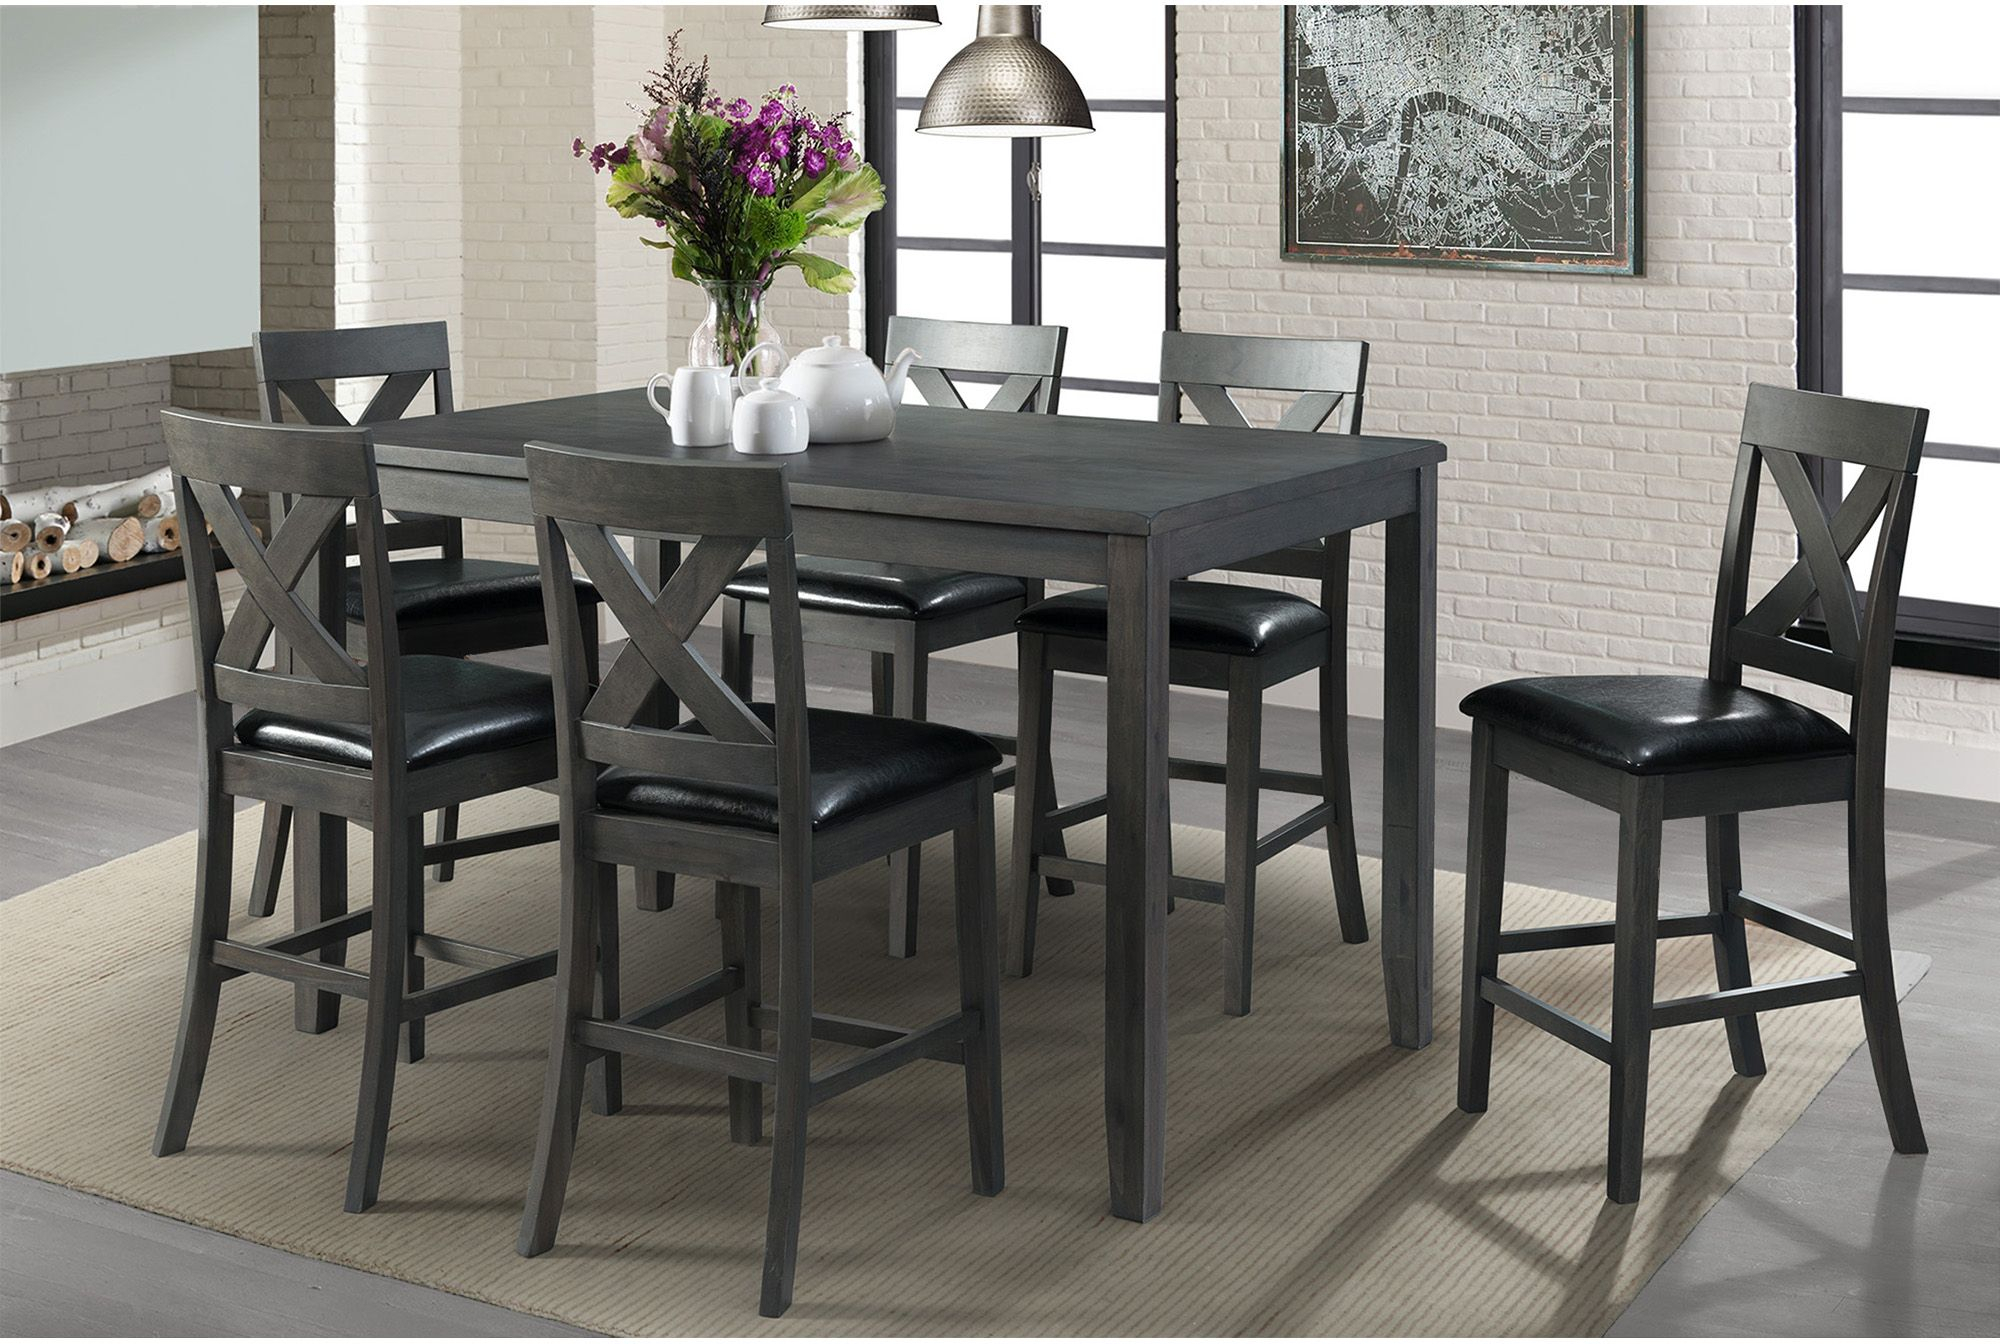 Alexa Gray 7 Piece Counter Height Dining Set From Elements Furniture In Latest Kinsler 3 Piece Bistro Sets (#1 of 20)